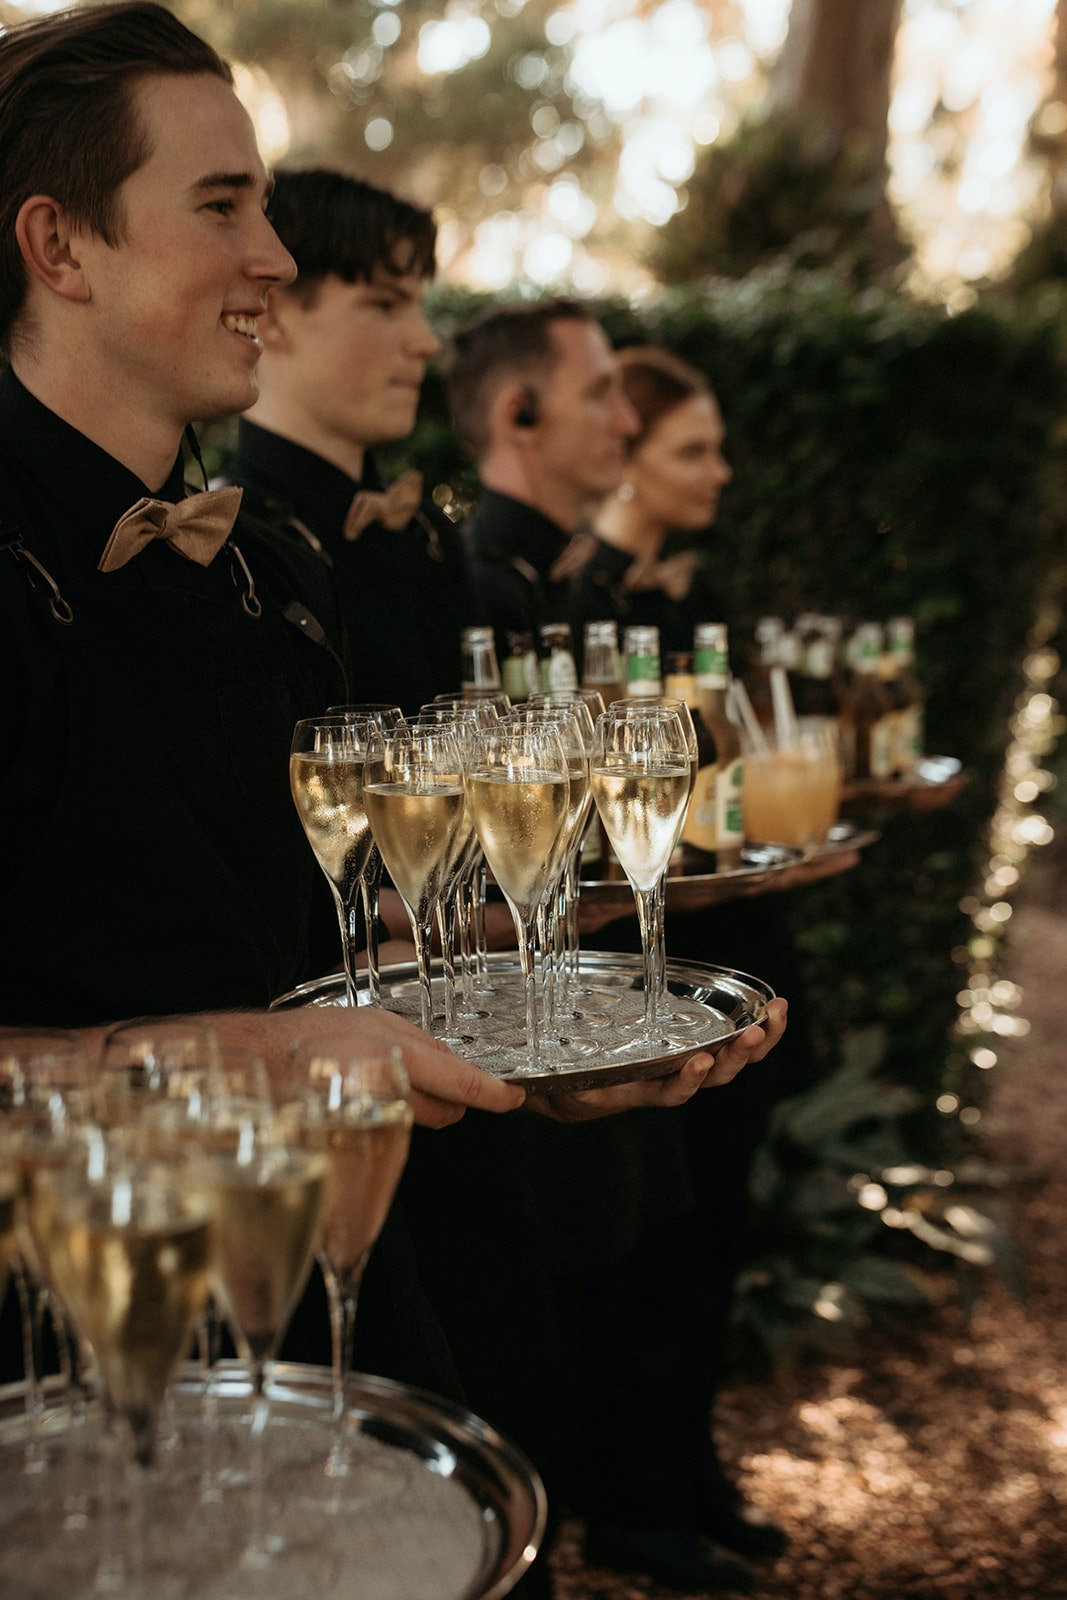 waiters dressed in black offer trays of champagne